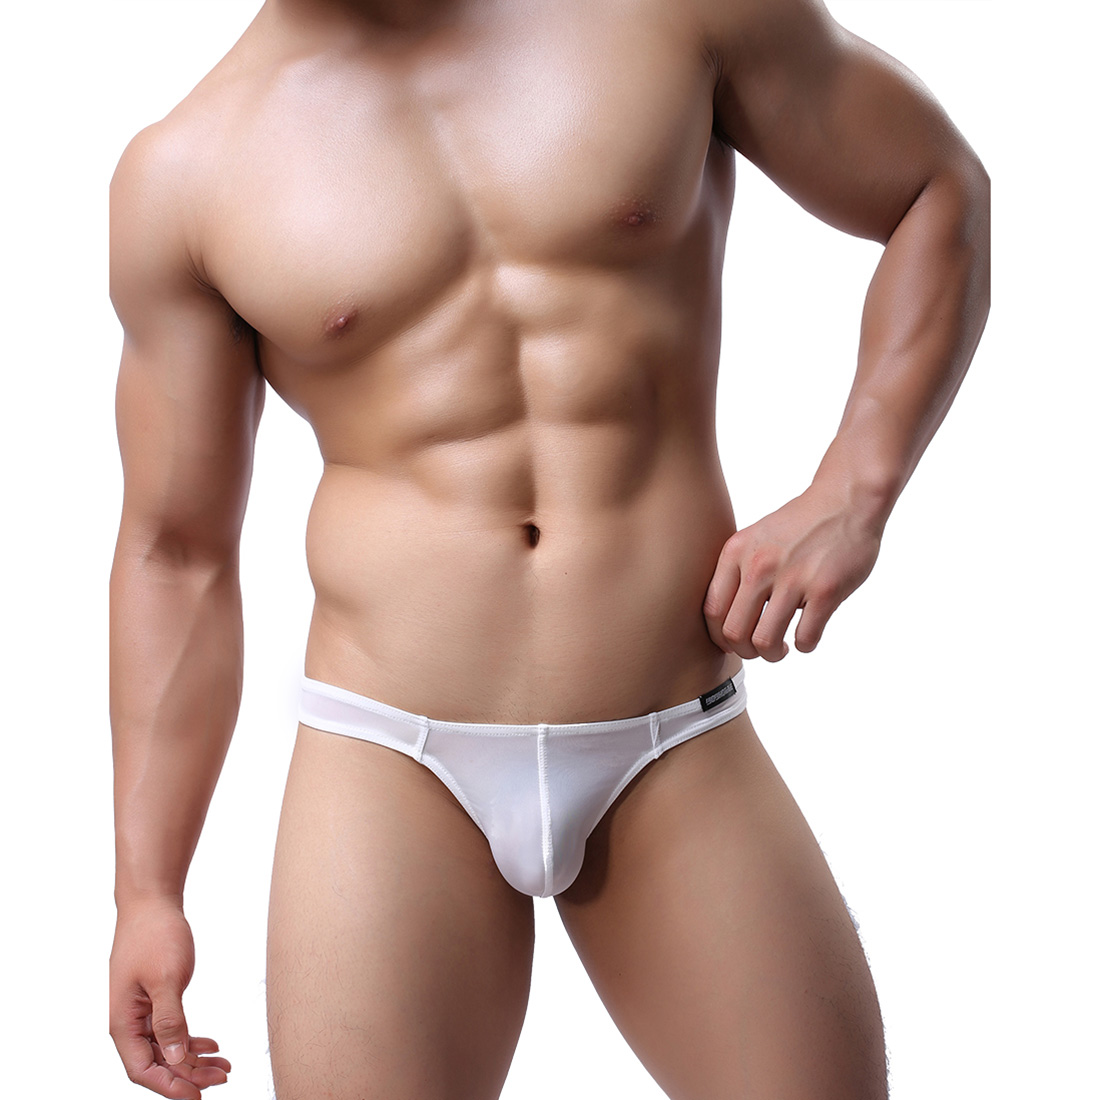 Men's Lingerie Underwear Sexy T-back G-string WH47 White ...